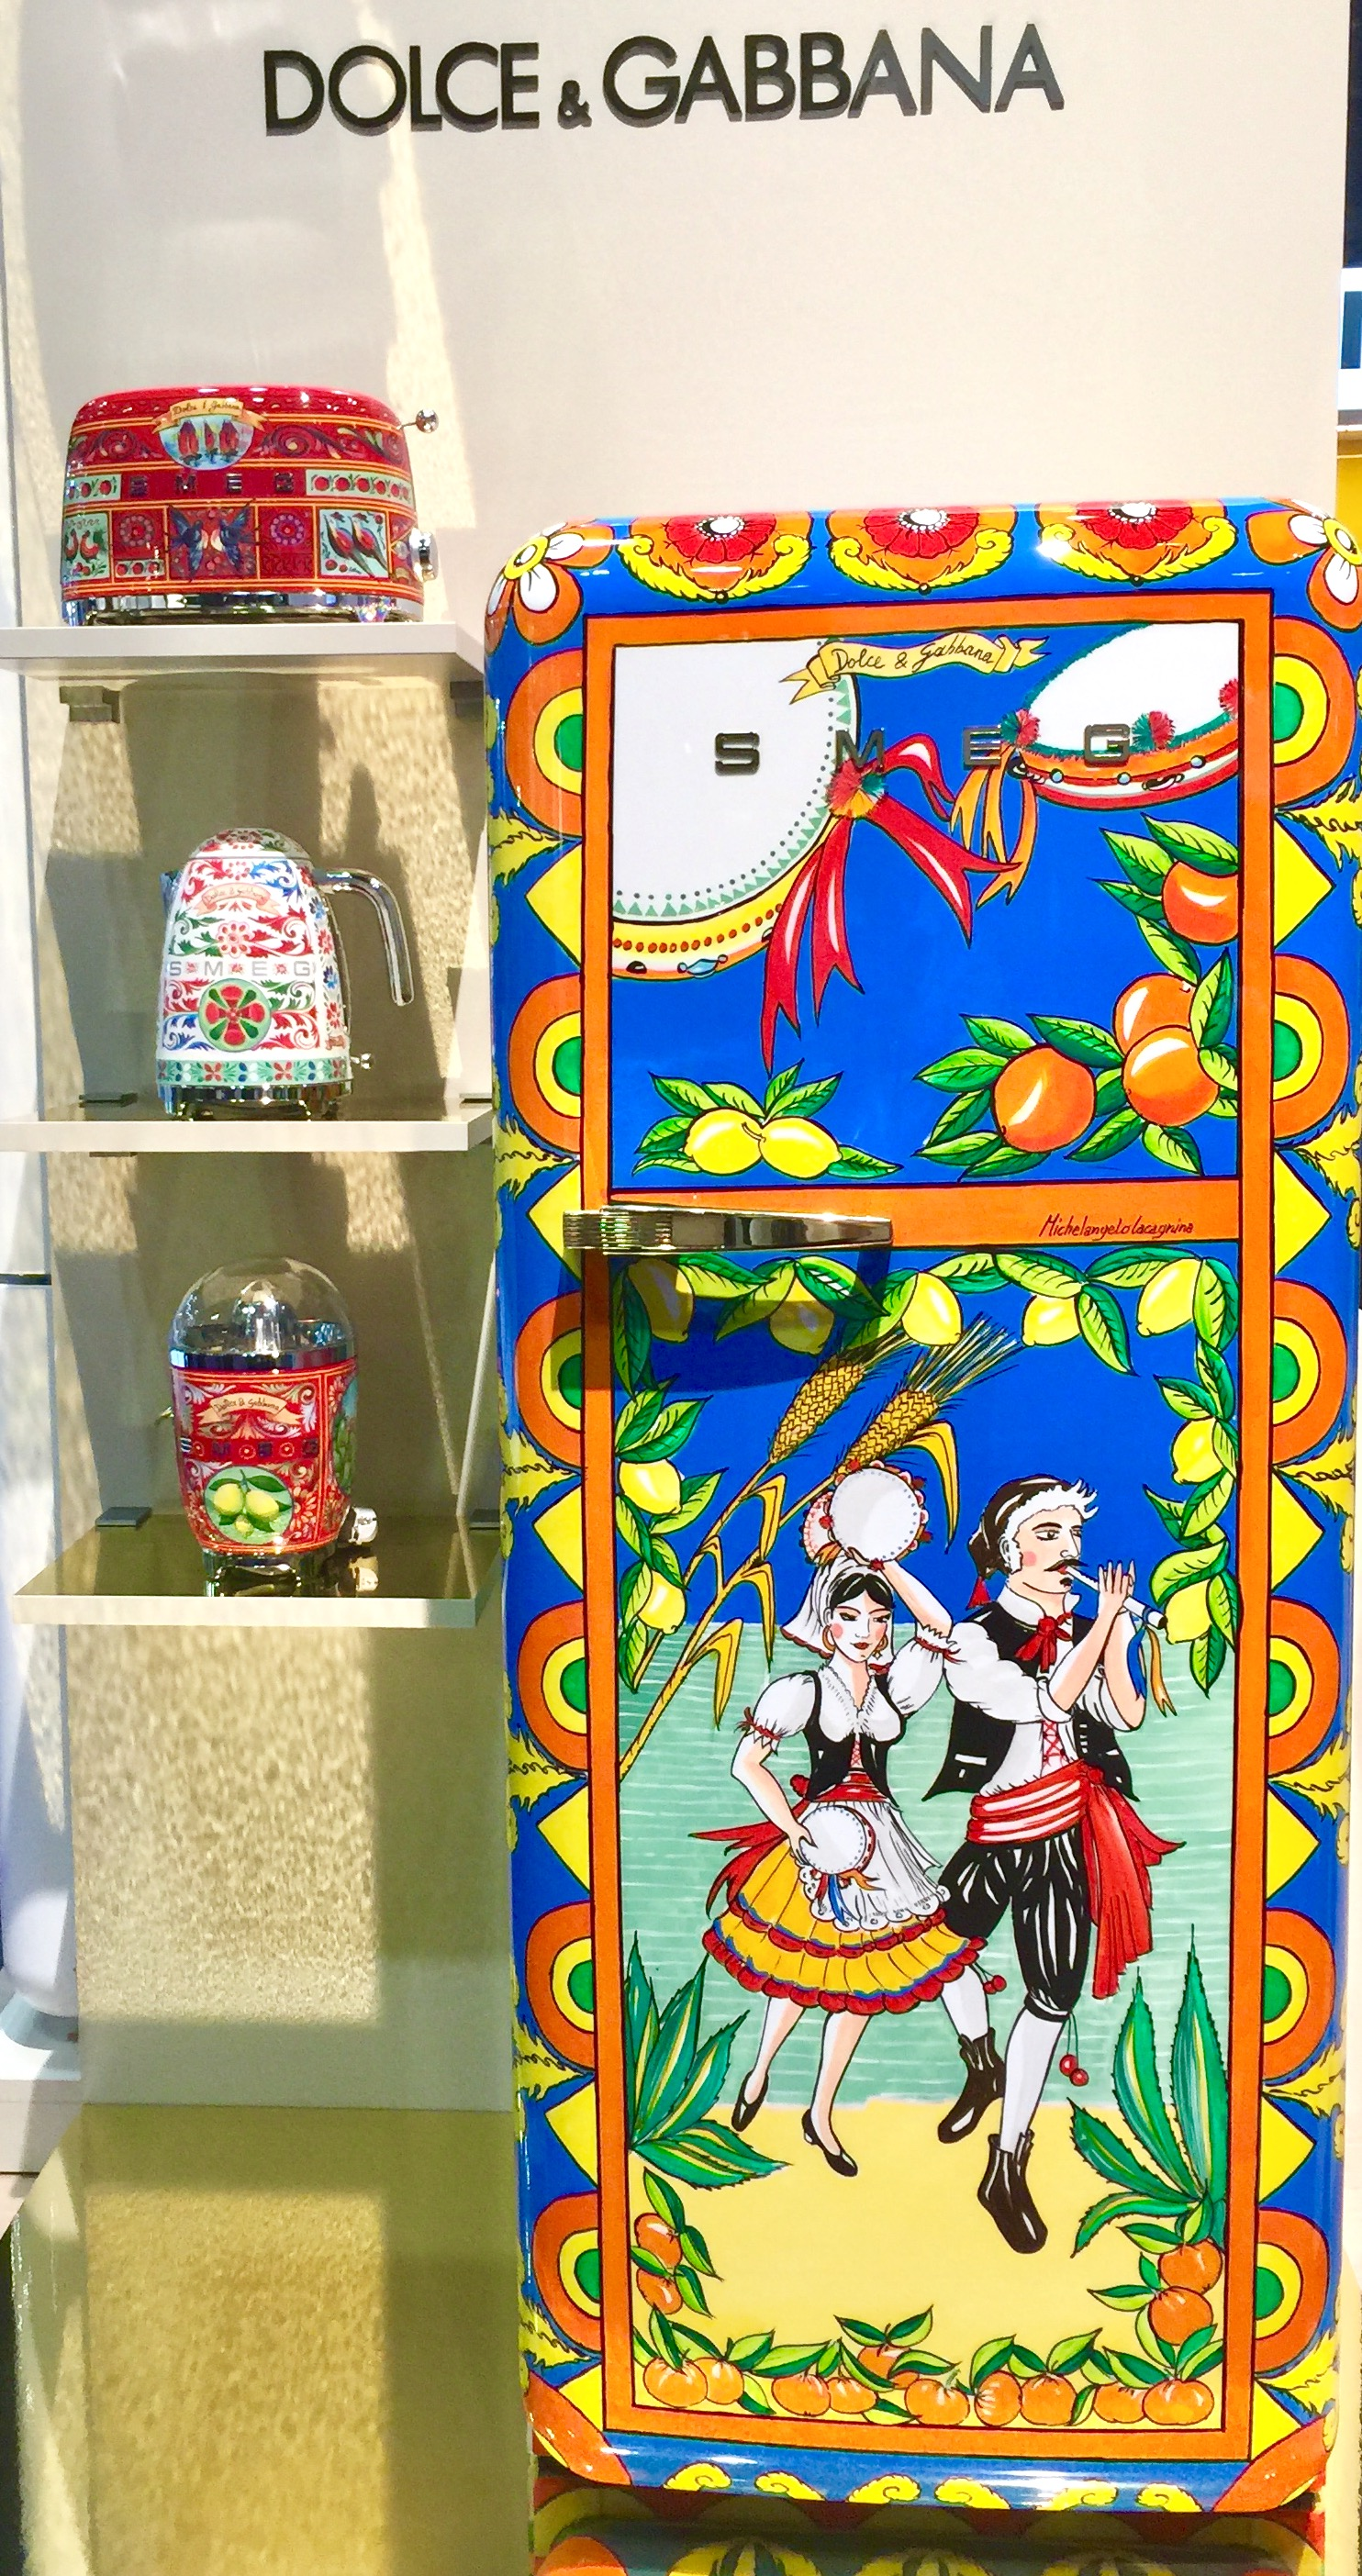 Smeg refrigerator designed by Dolce & Gabbana - Appliances as the centerpiece of the kitchen! #appliances #refrigerator #dolceandgabbana